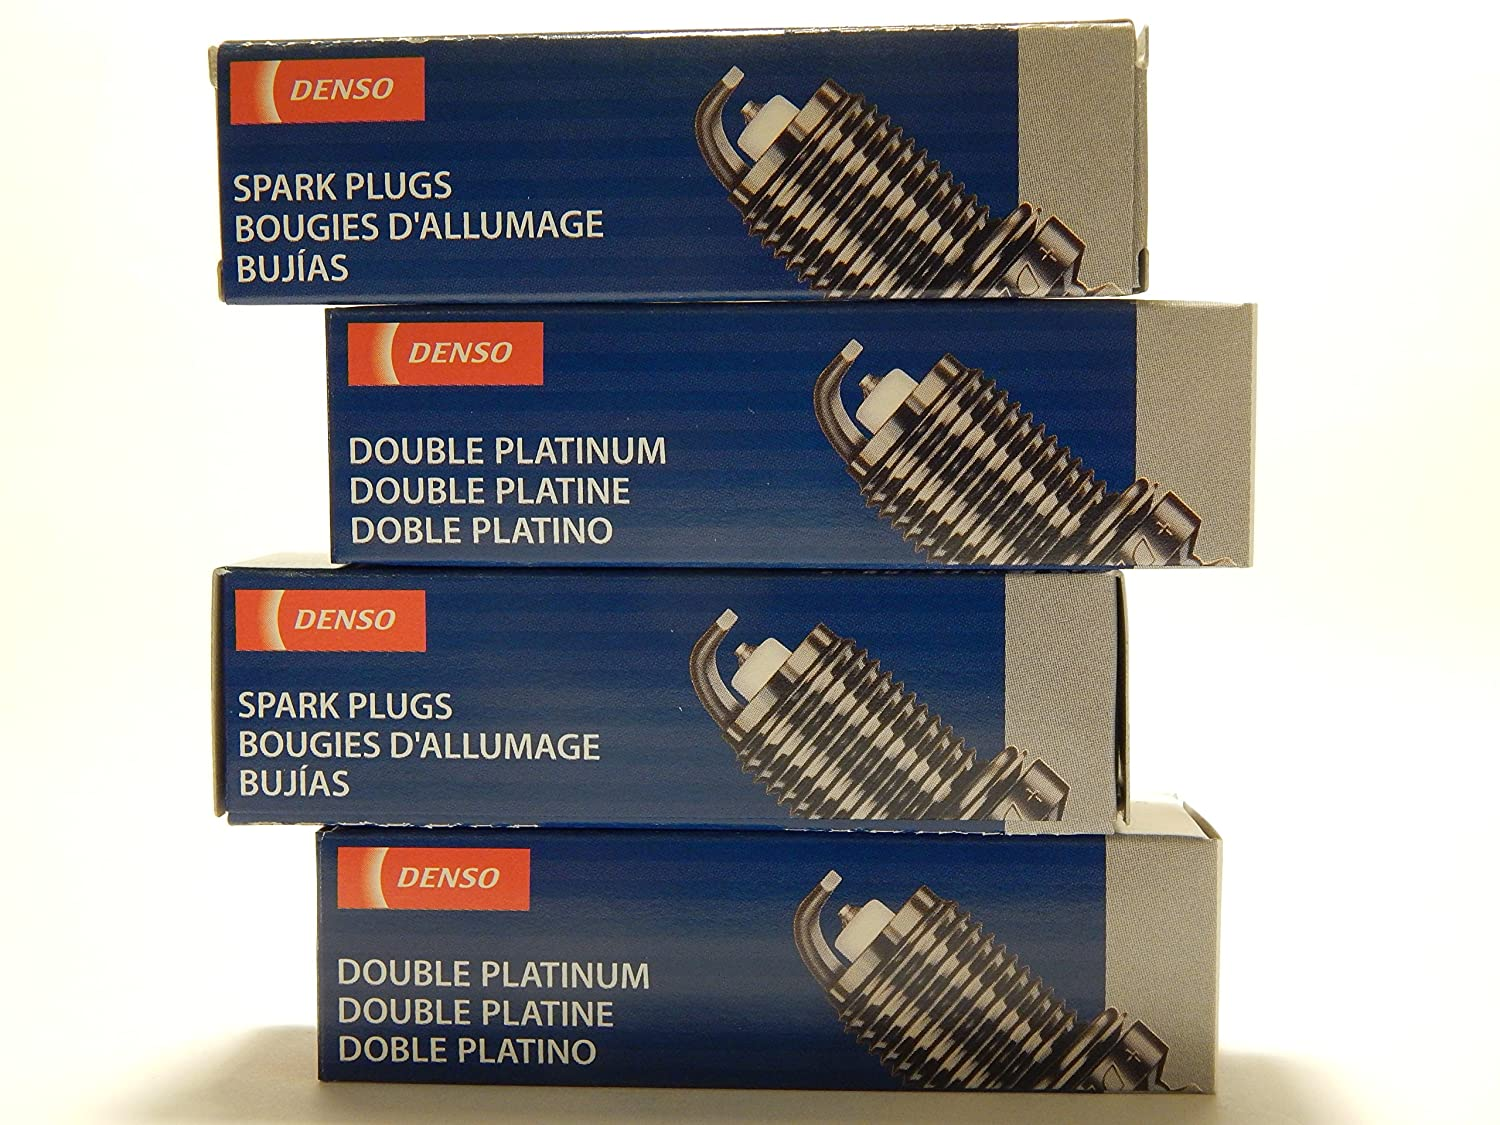 Amazon.com: 4 PCS *NEW* -- DENSO #3174 -- DOUBLE PLATINUM Spark Plugs -- PK16PR-P11: Automotive